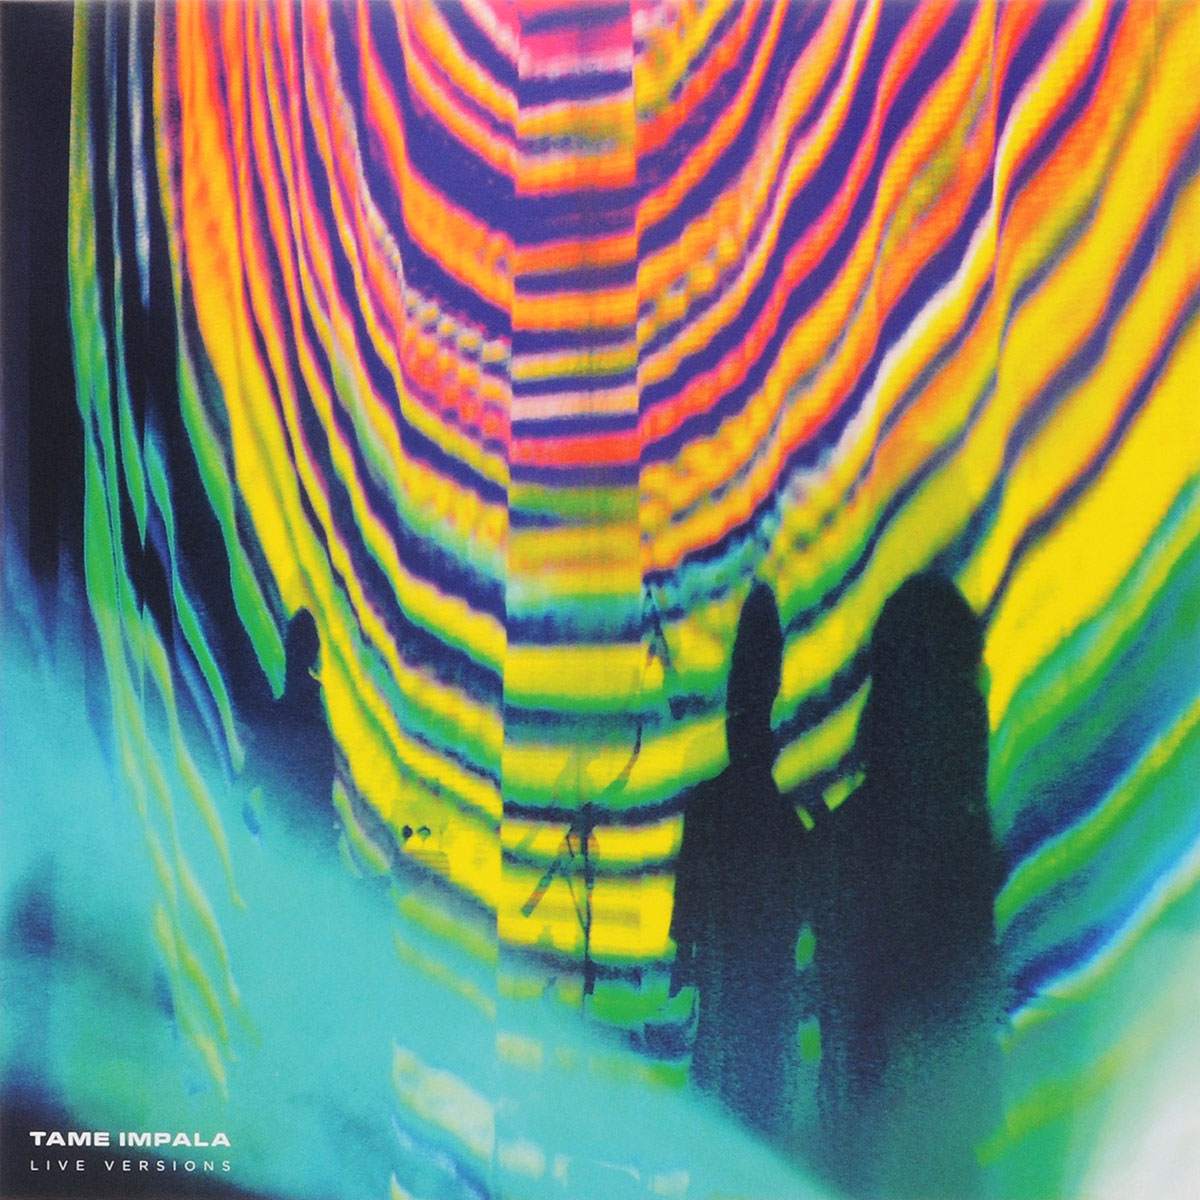 Tame Impala. Live Versions (LP)